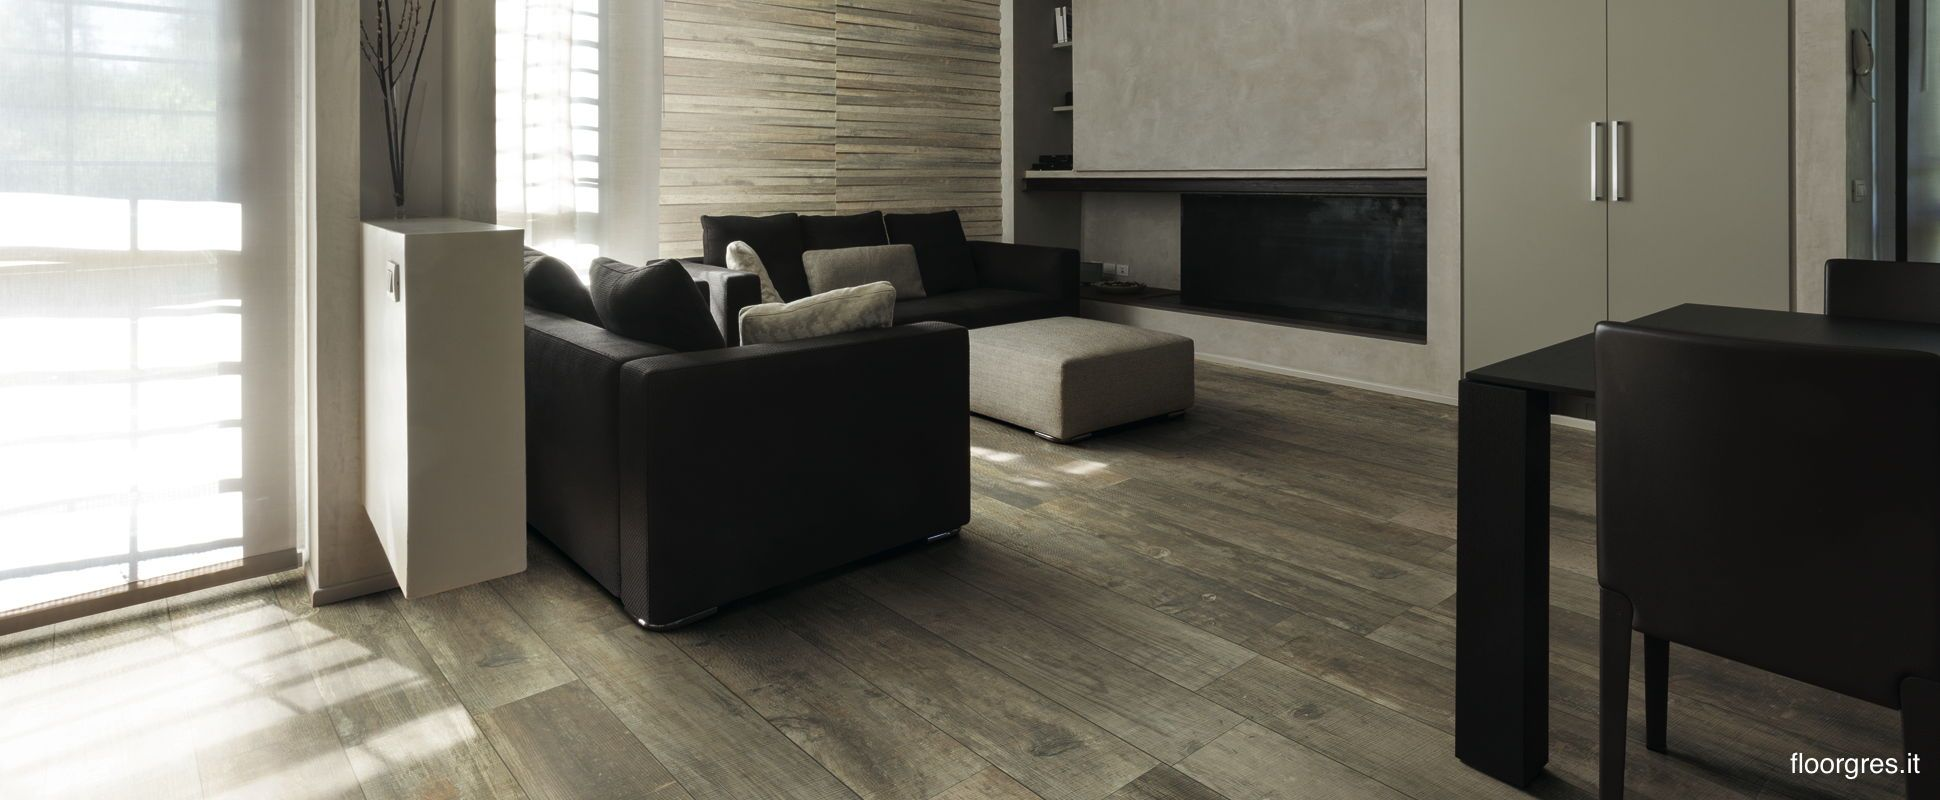 Styletch - Fine porcelain stoneware Floor Gres Definitely check this company out - they do both contemporary floor and wall tiles, so would be coordinated